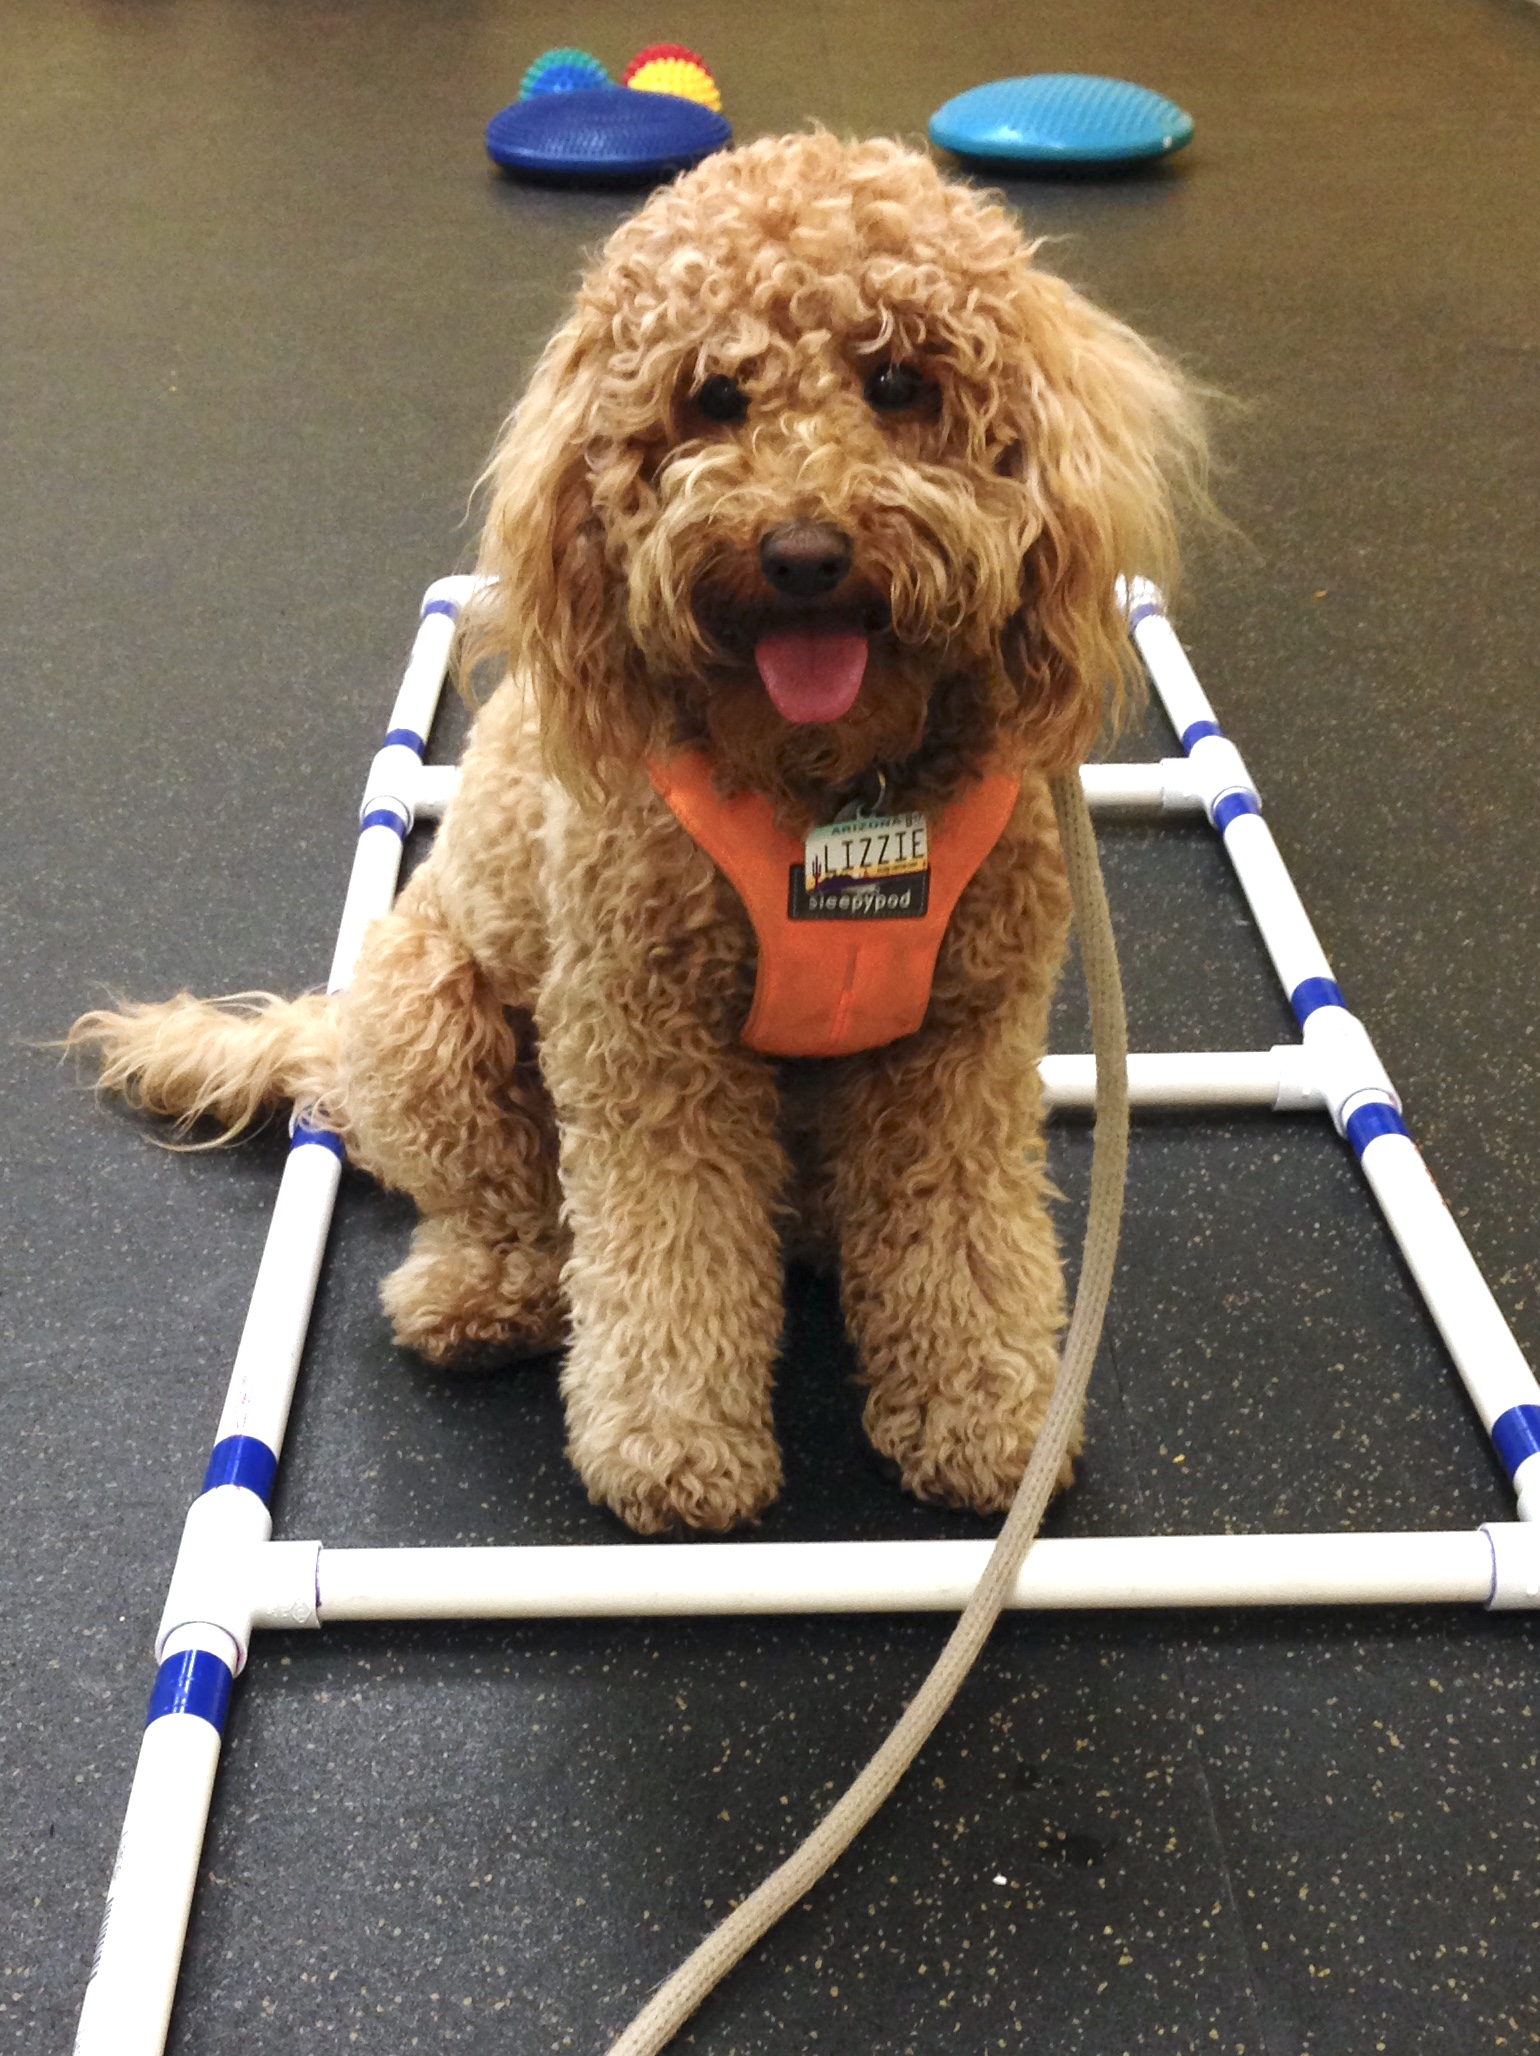 Lizzie practices a proper sit between the rungs of the ladder. This station on the obstacle course requires her to be more intentional with her movements.